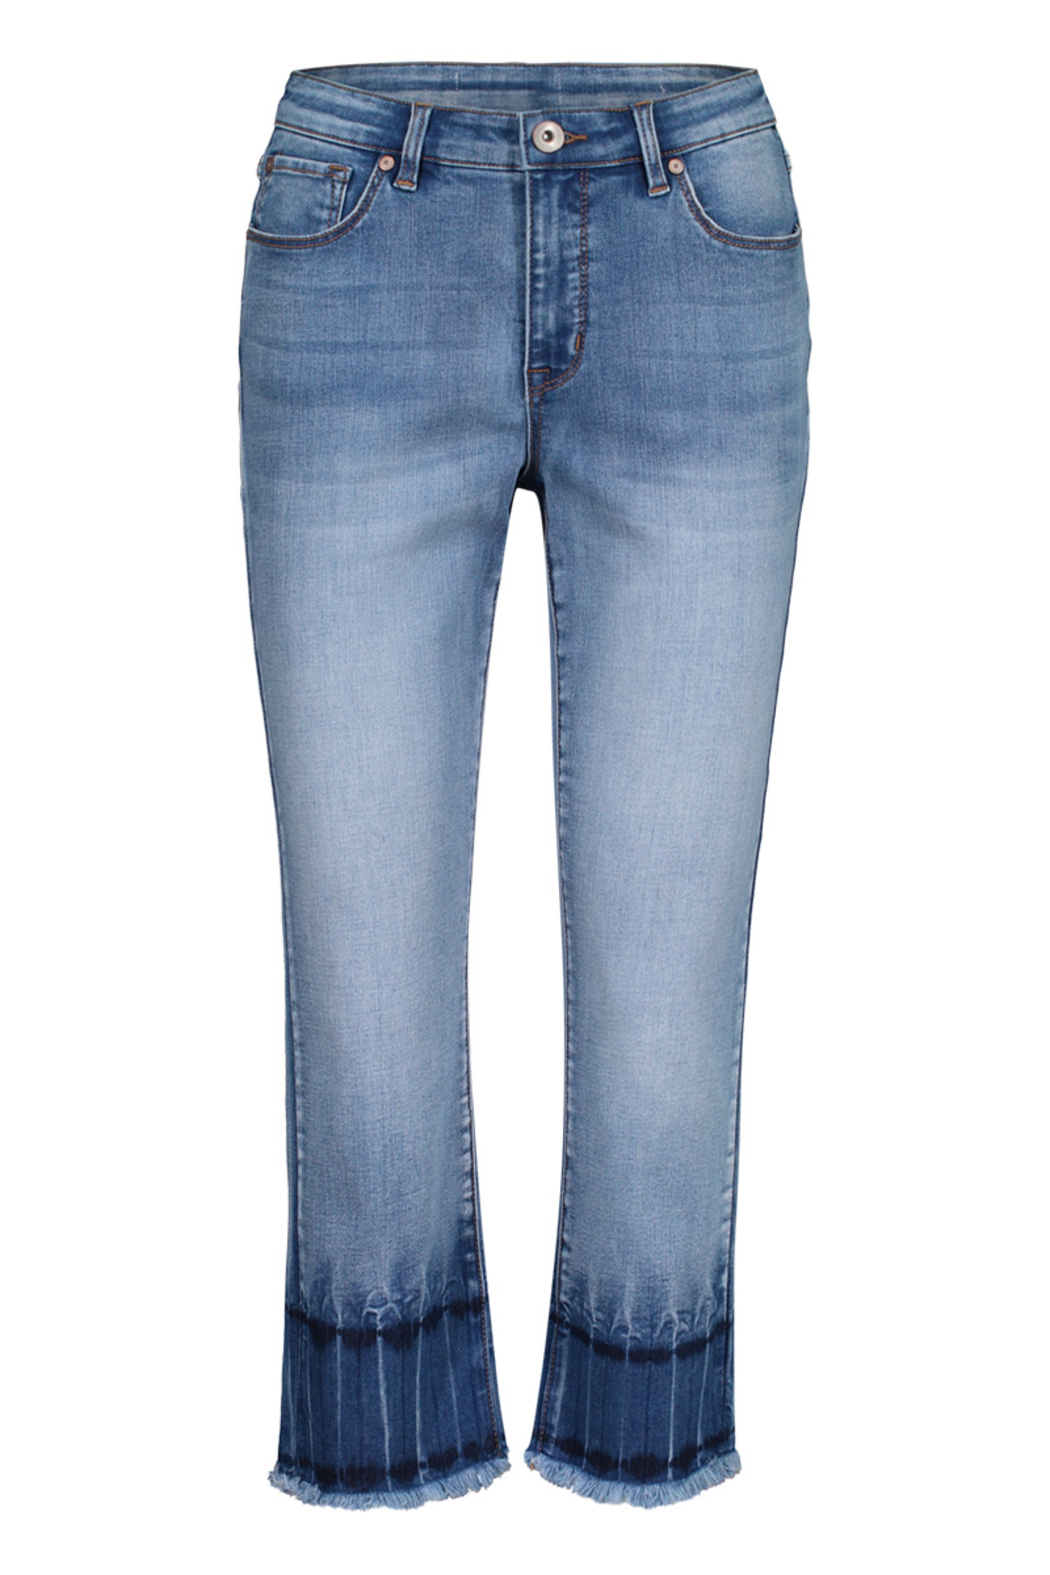 Tribal Jeans Blue Glow Ankle Jeans - Front Cropped Image